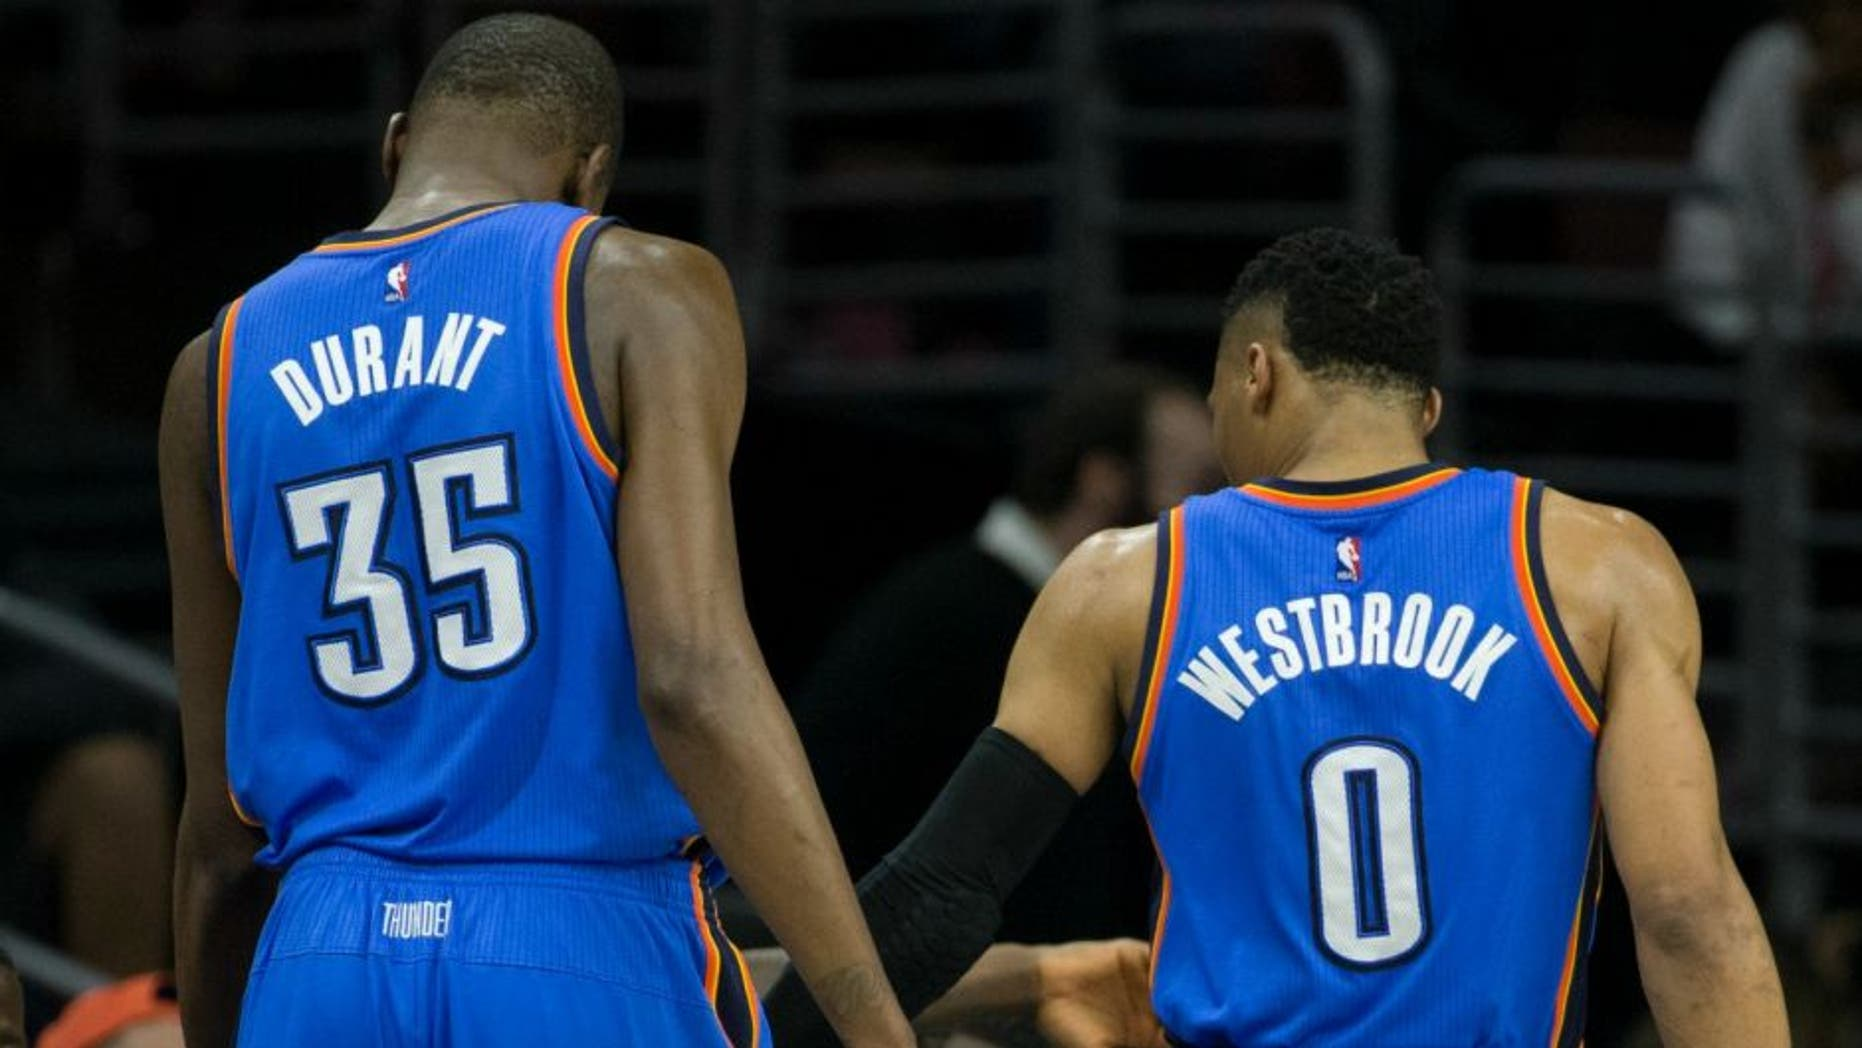 SAN ANTONIO, TX - MAY 10: Russell Westbrook #0 of the Oklahoma City Thunder high fives Kevin Durant #35 during the game against the San Antonio Spurs in Game Five of the Western Conference Semifinals during the 2016 NBA Playoffs on May 10, 2016 at the AT&T Center in San Antonio, Texas. NOTE TO USER: User expressly acknowledges and agrees that, by downloading and or using this photograph, user is consenting to the terms and conditions of the Getty Images License Agreement. Mandatory Copyright Notice: Copyright 2016 NBAE (Photos by Layne Murdoch/NBAE via Getty Images)